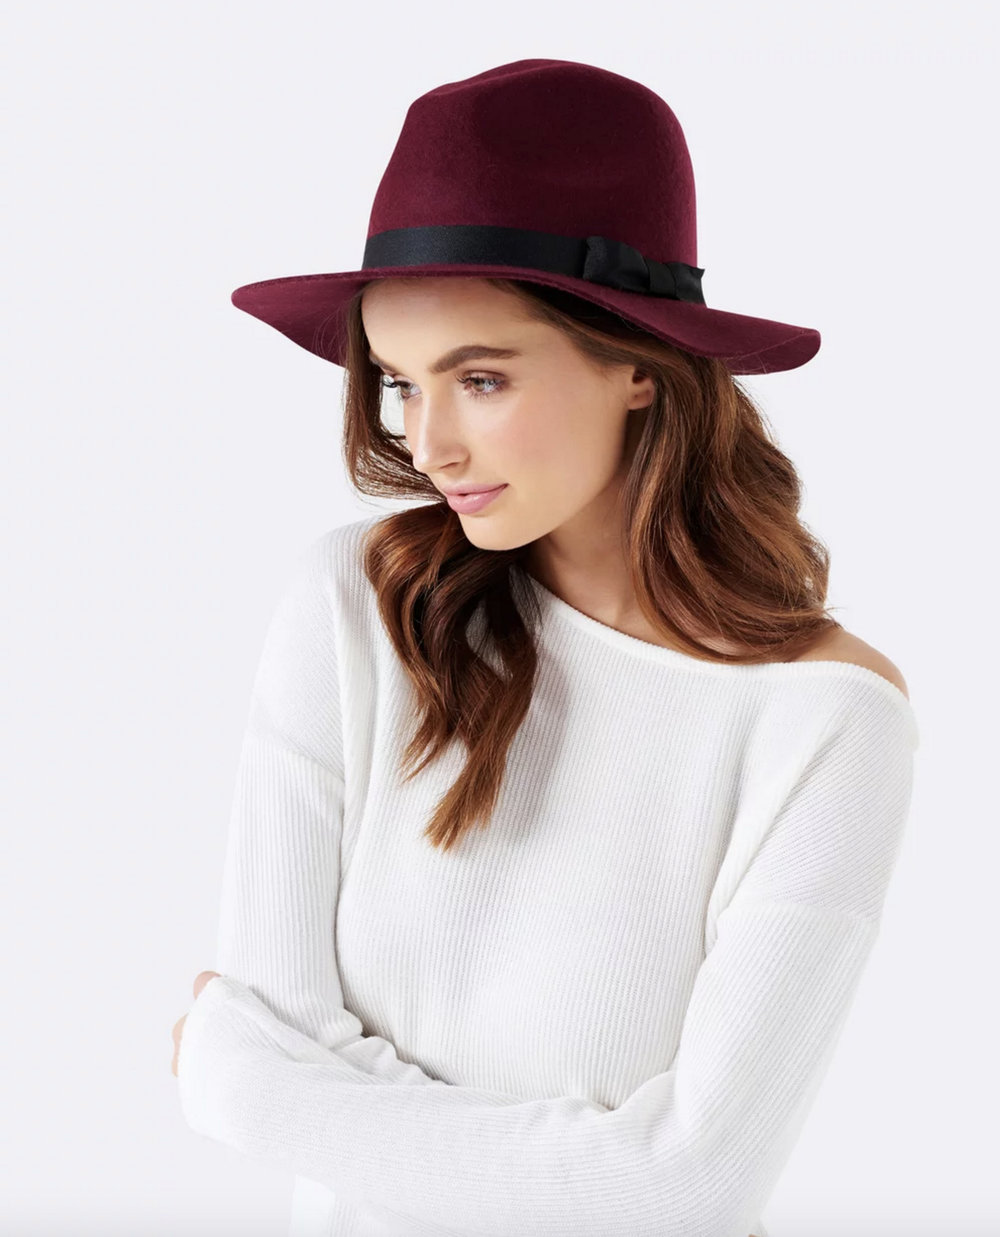 Forever New ruby fedora felt hat $44.99